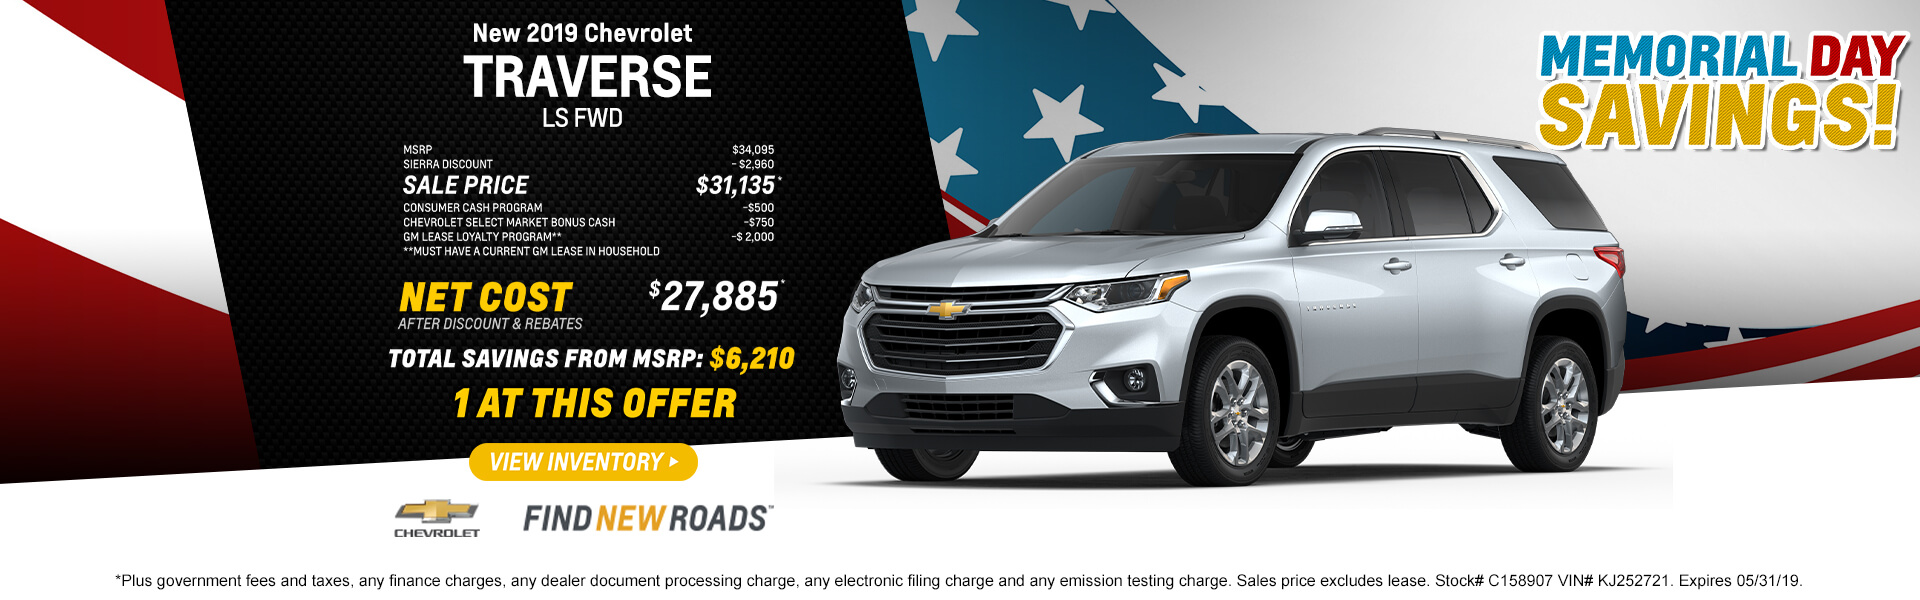 2019 CHEVROLET TRAVERSE LS FWD Purchase . $34,095 Plus government fees and taxes, any finance charges, any dealer document processing charge, any electronic filing charge and any emission testing charge. Sales price excludes lease. Stock# C158907 VIN# KJ252721. Expires 05/31/19.